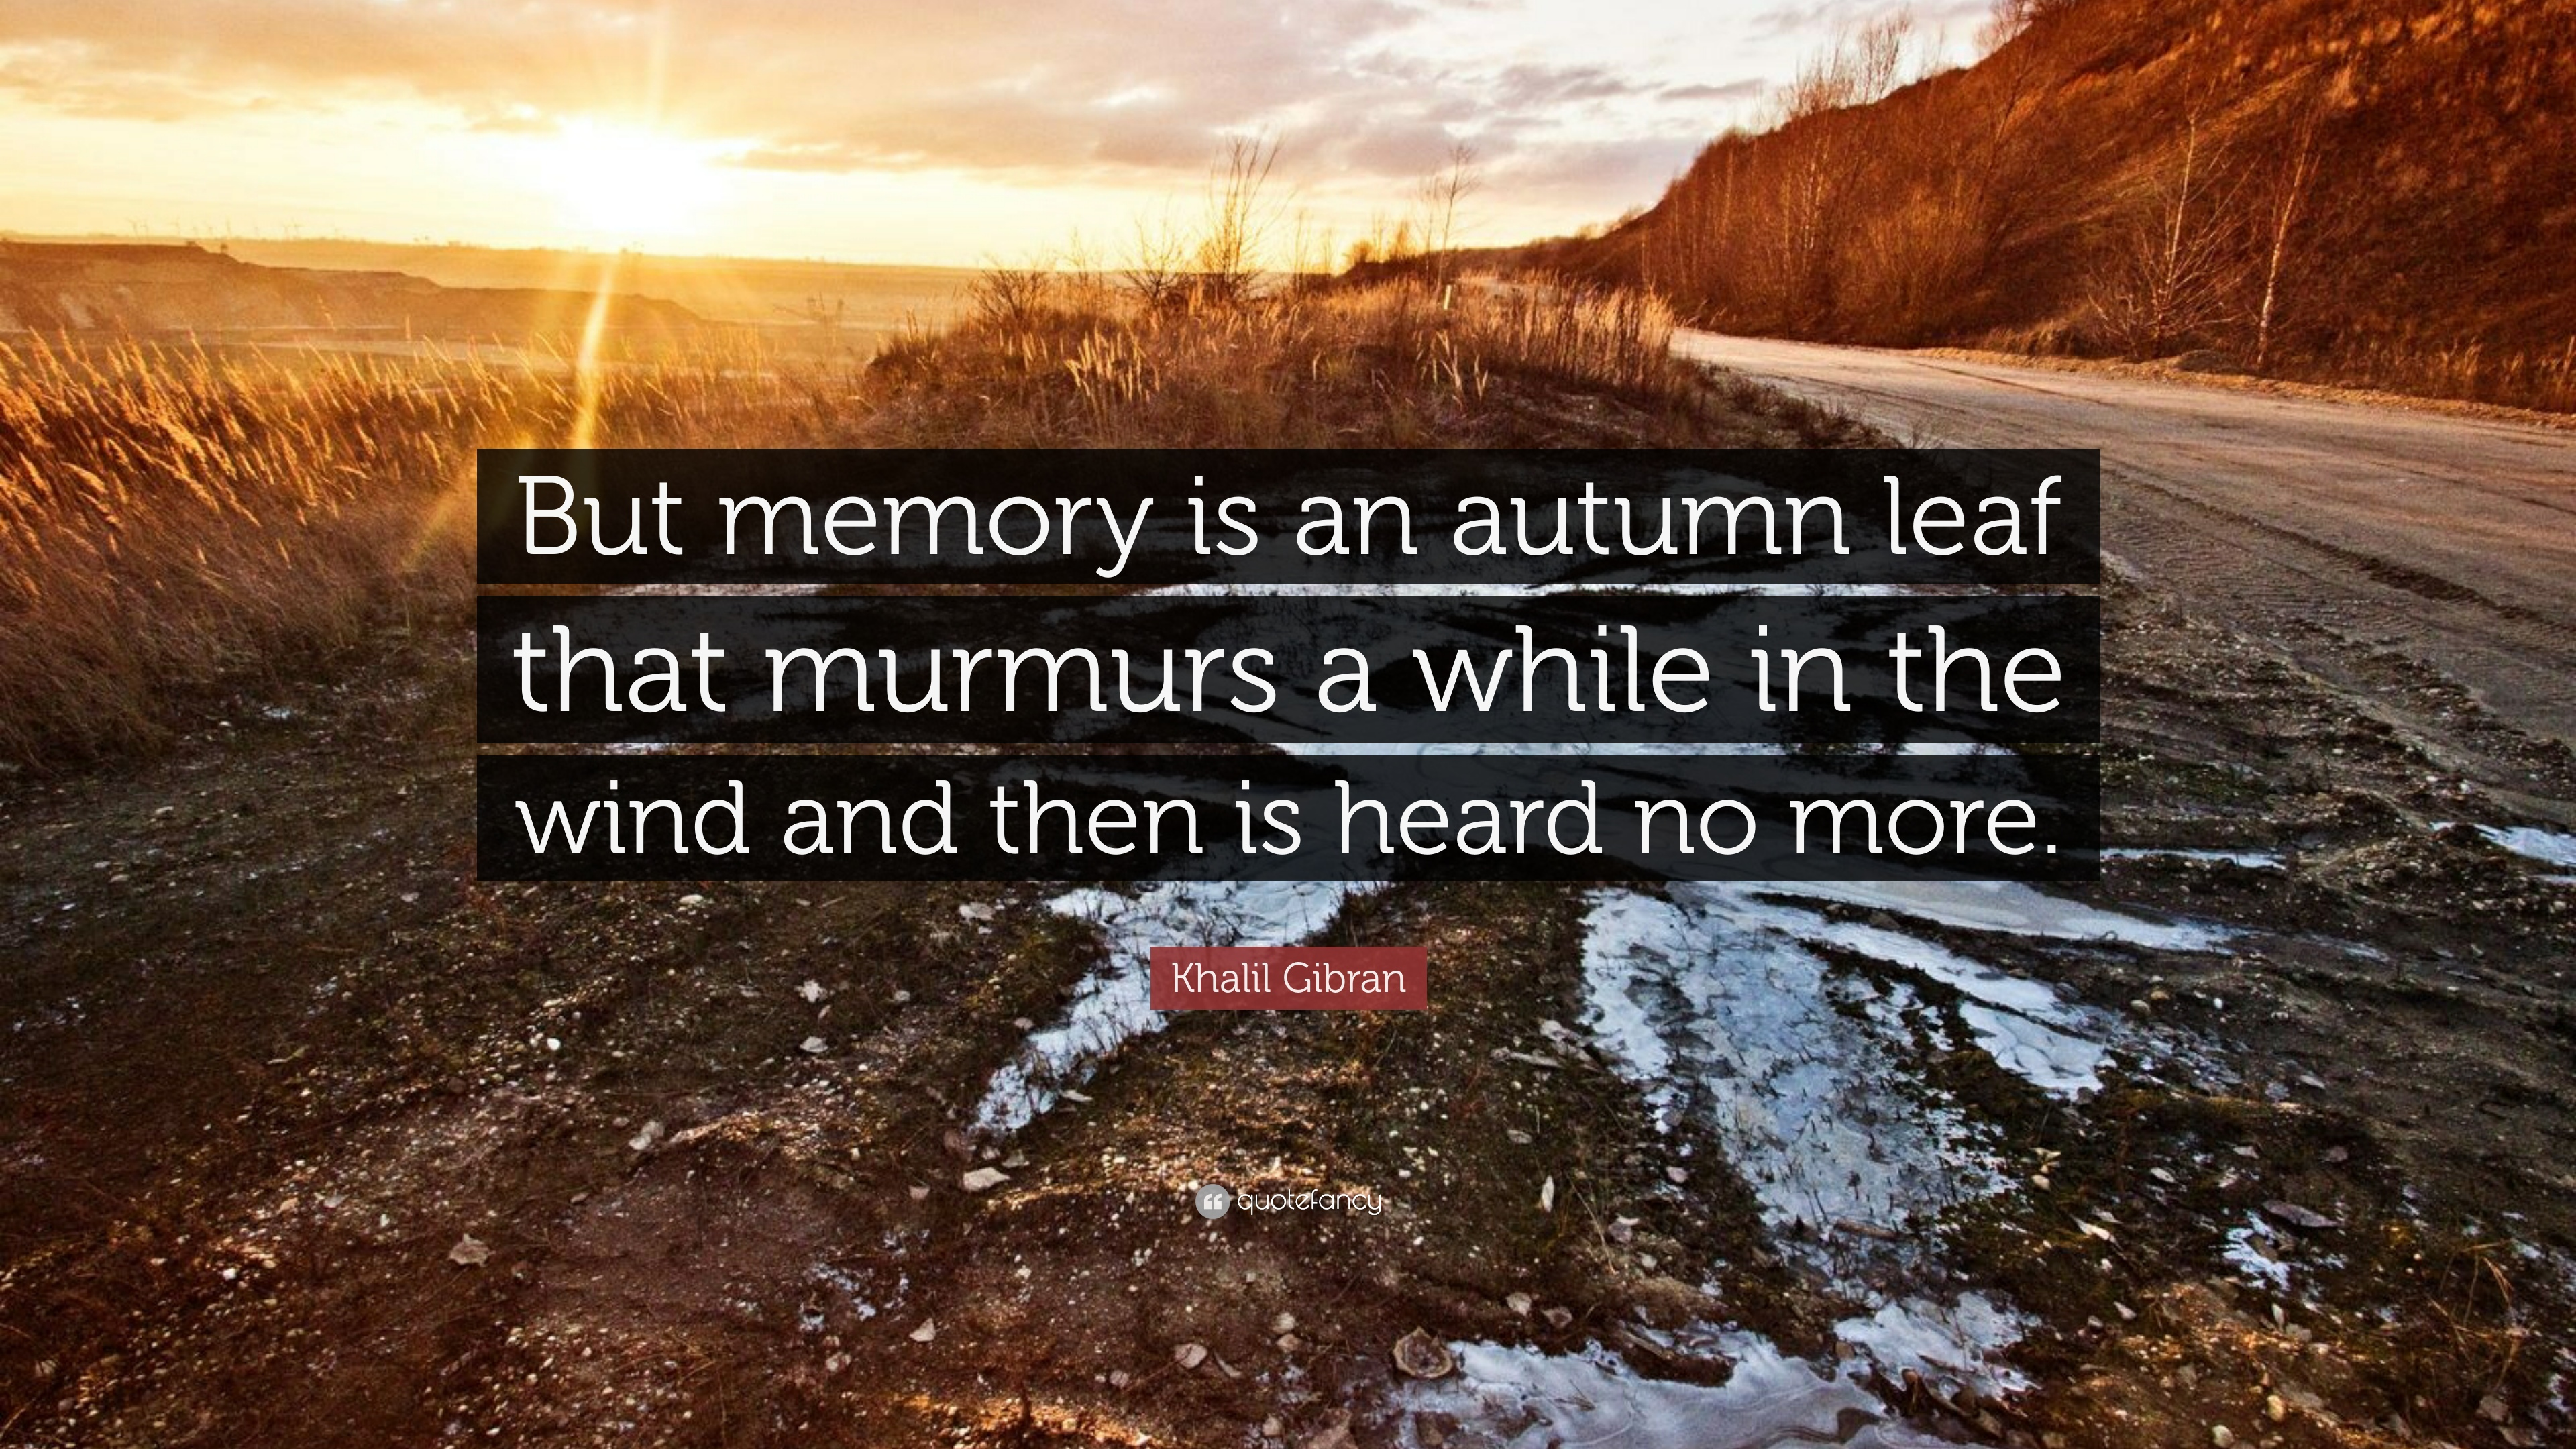 Quotes About Memories (40 wallpapers) - Quotefancy